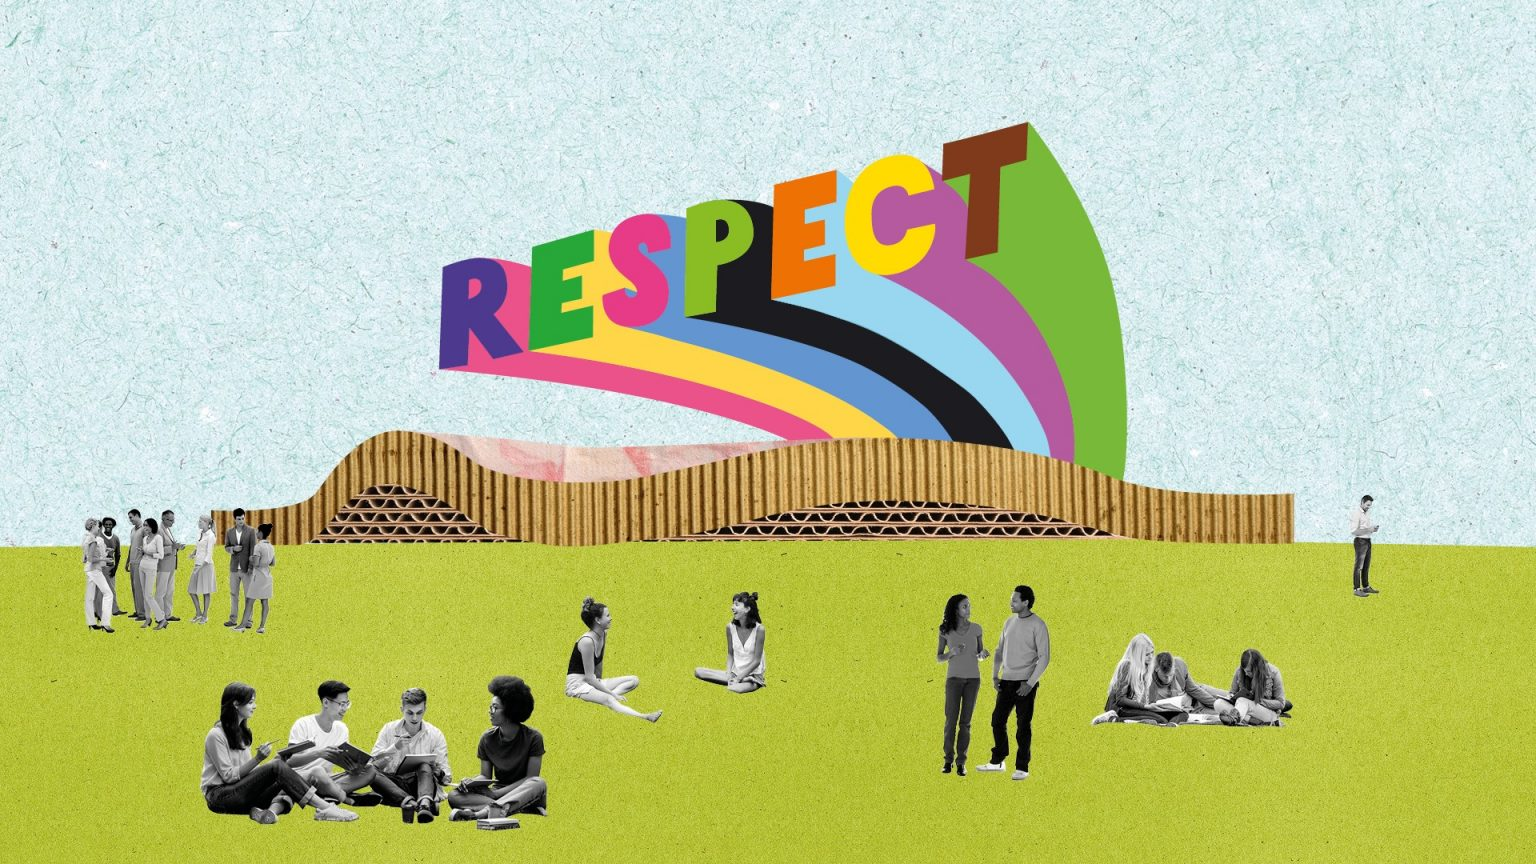 Campagne Respect @ EPFL - Agence Etienne Etienne